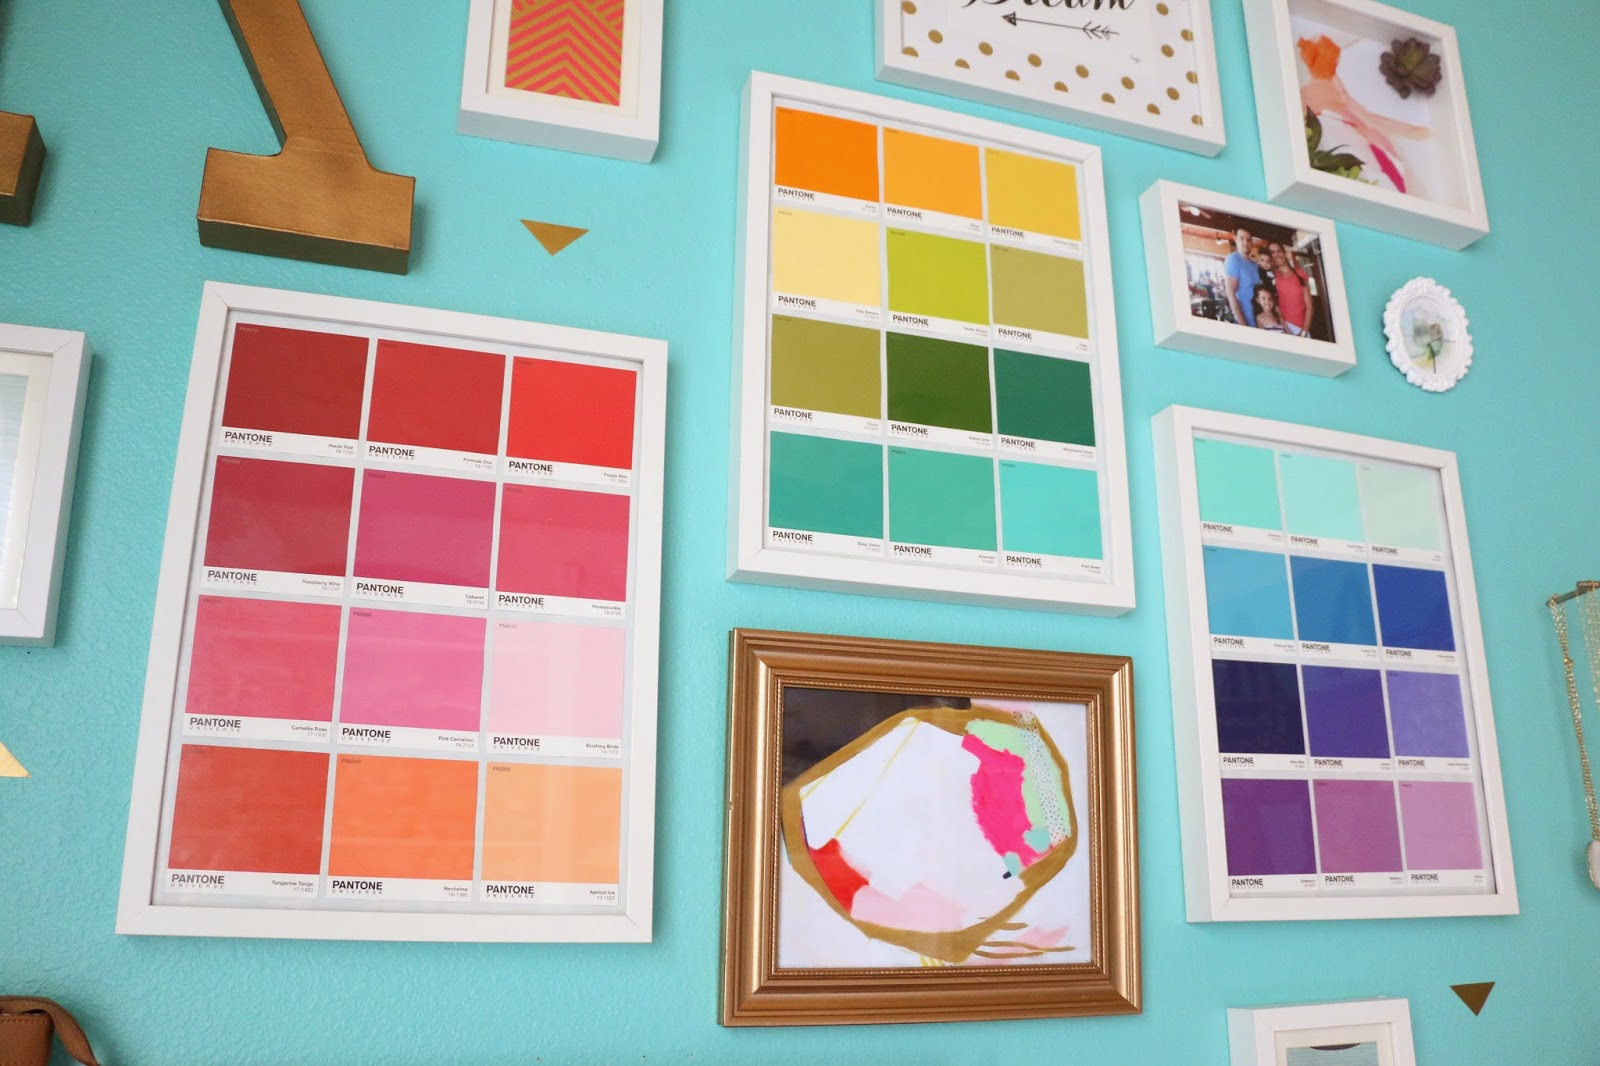 Color of art gallery walls - One Of My Favorite Custom Art Pieces That I Added Were These Three Framed Pantone Color Swatch Sheets I Actually Picked These Up From Lowes In Their Paint